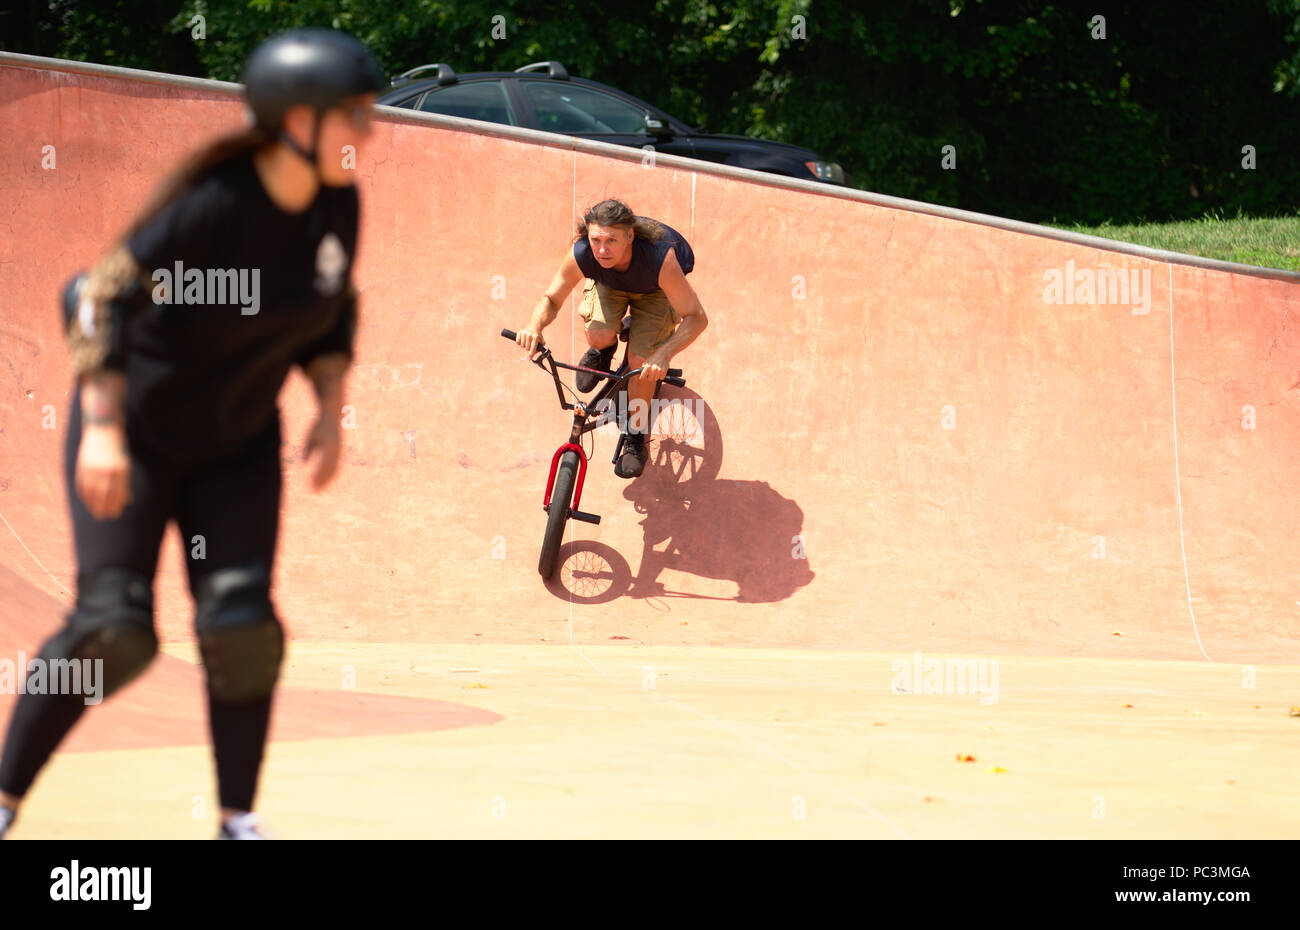 Adult male on BMX bike at park with female skateboarder in ...